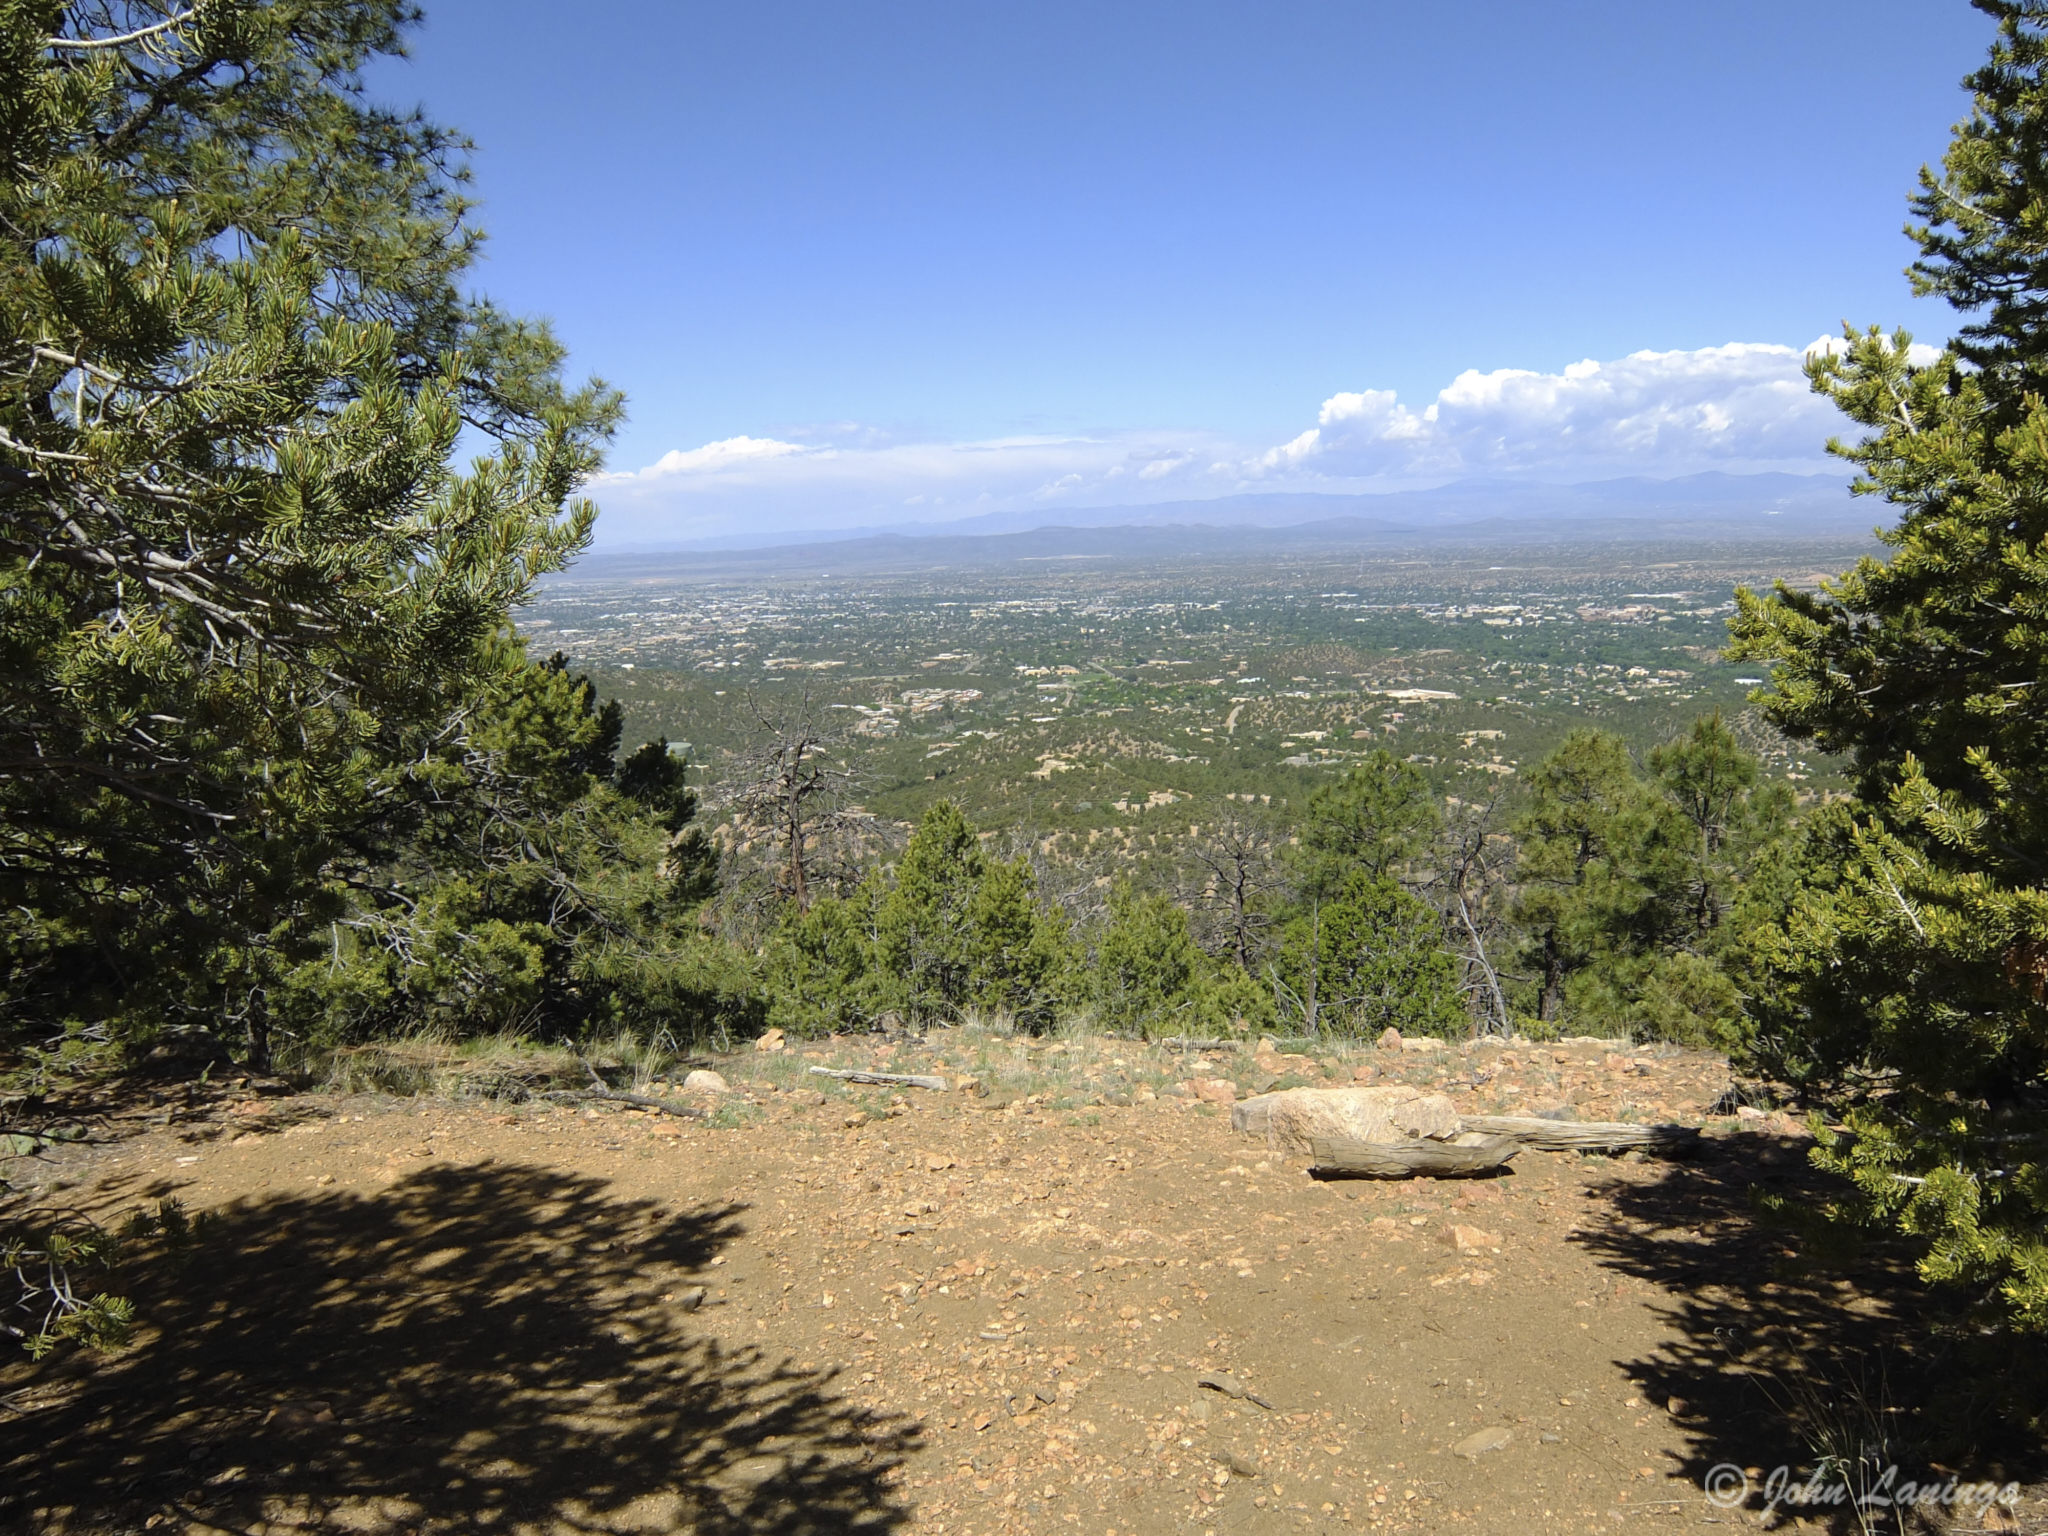 A view back to Santa Fe